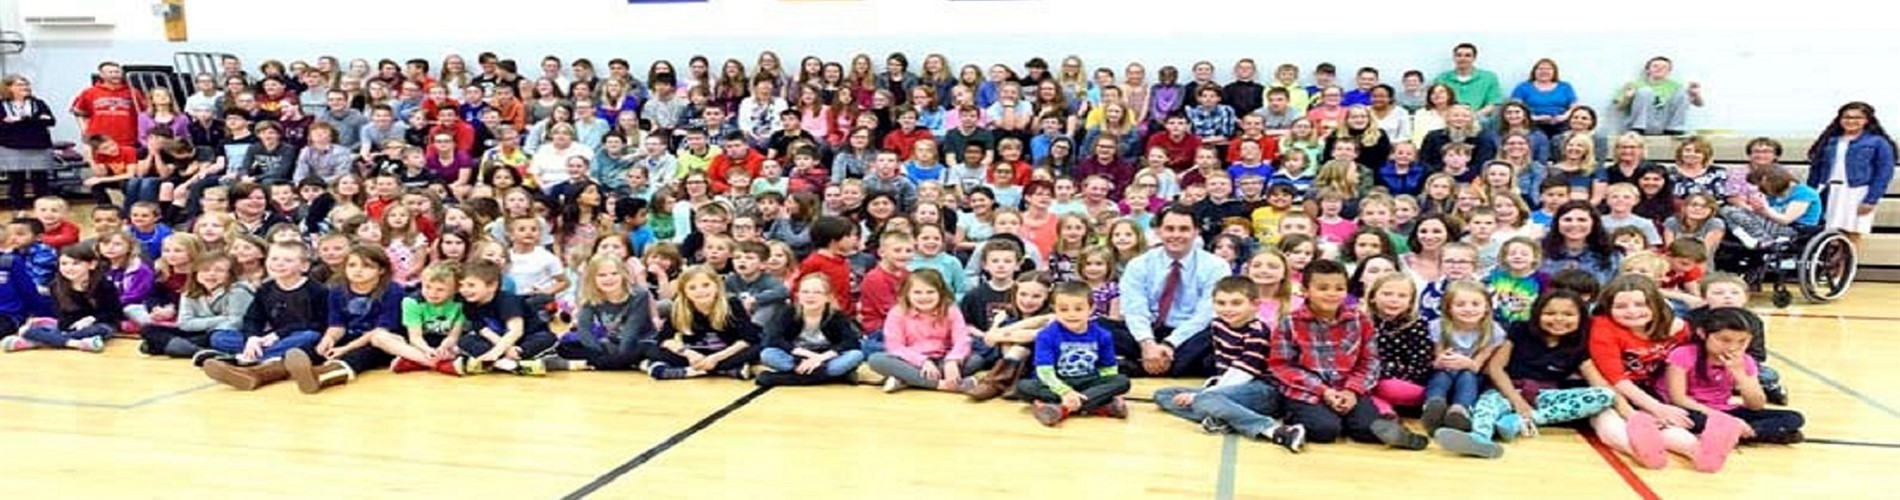 Governor Visit All Students Gym